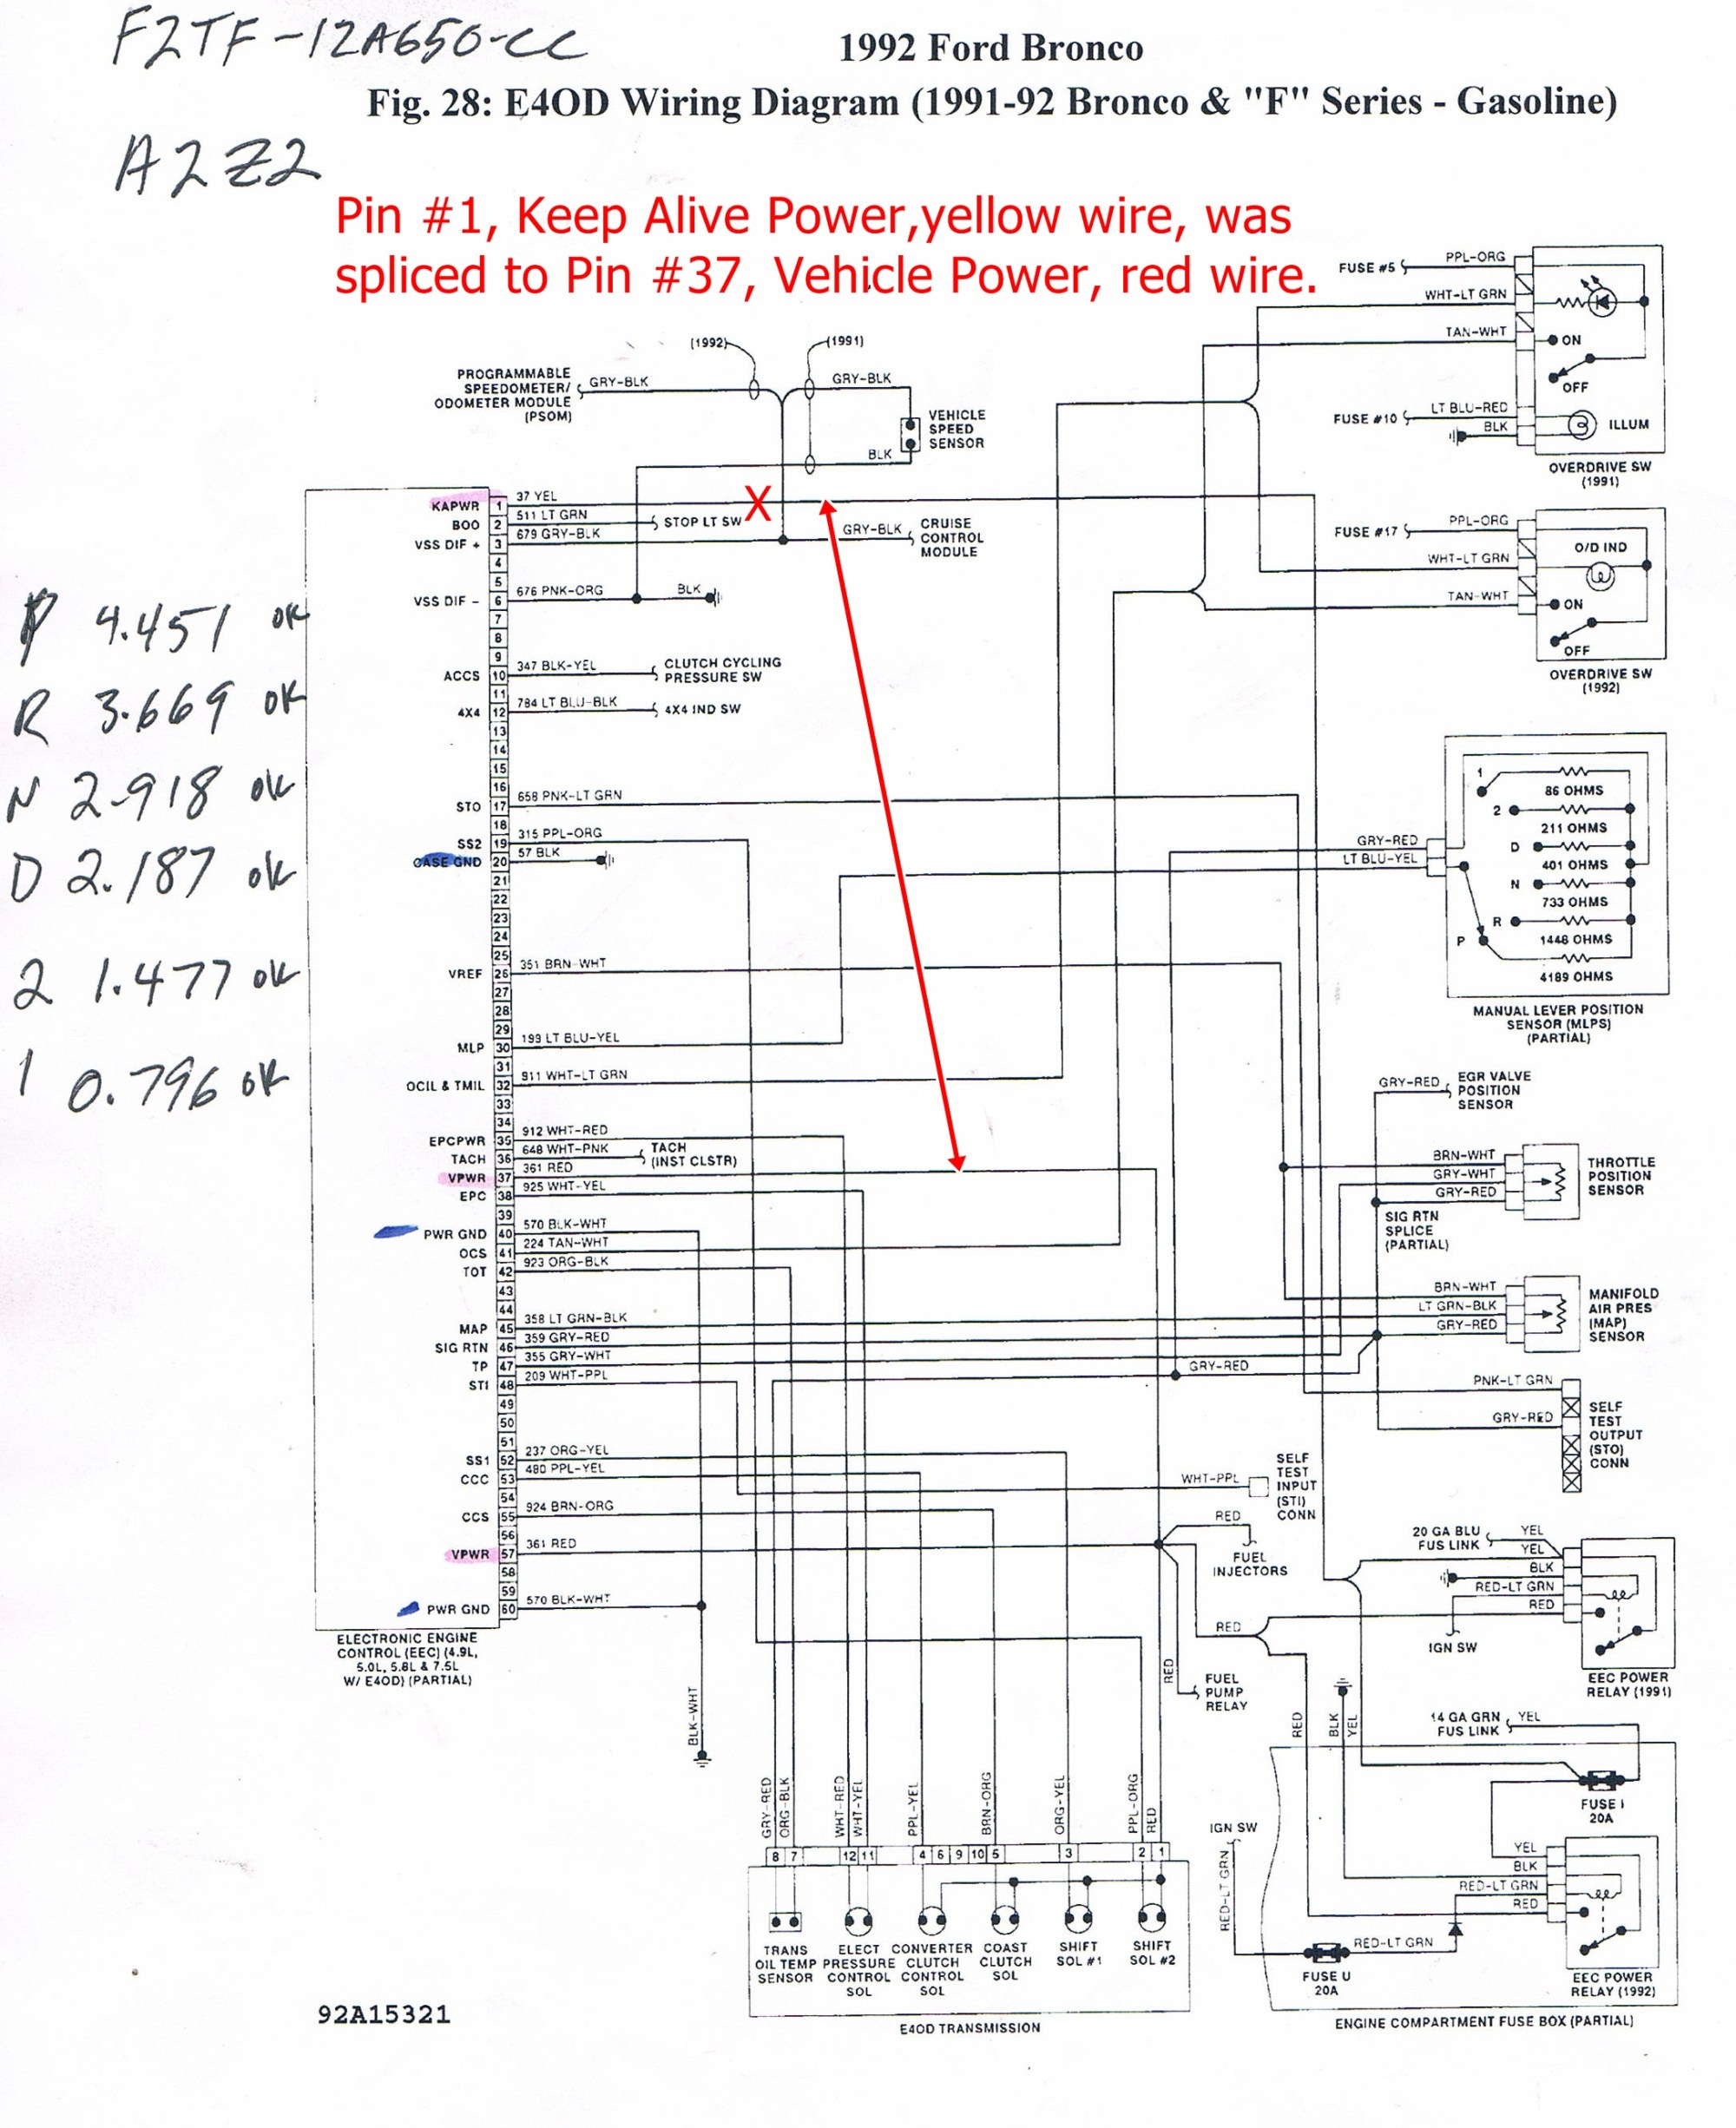 hight resolution of 1997 truck wiring harness 7 pin wiring diagram for you ford truck trailer harness 1997 truck wiring harness 7 pin